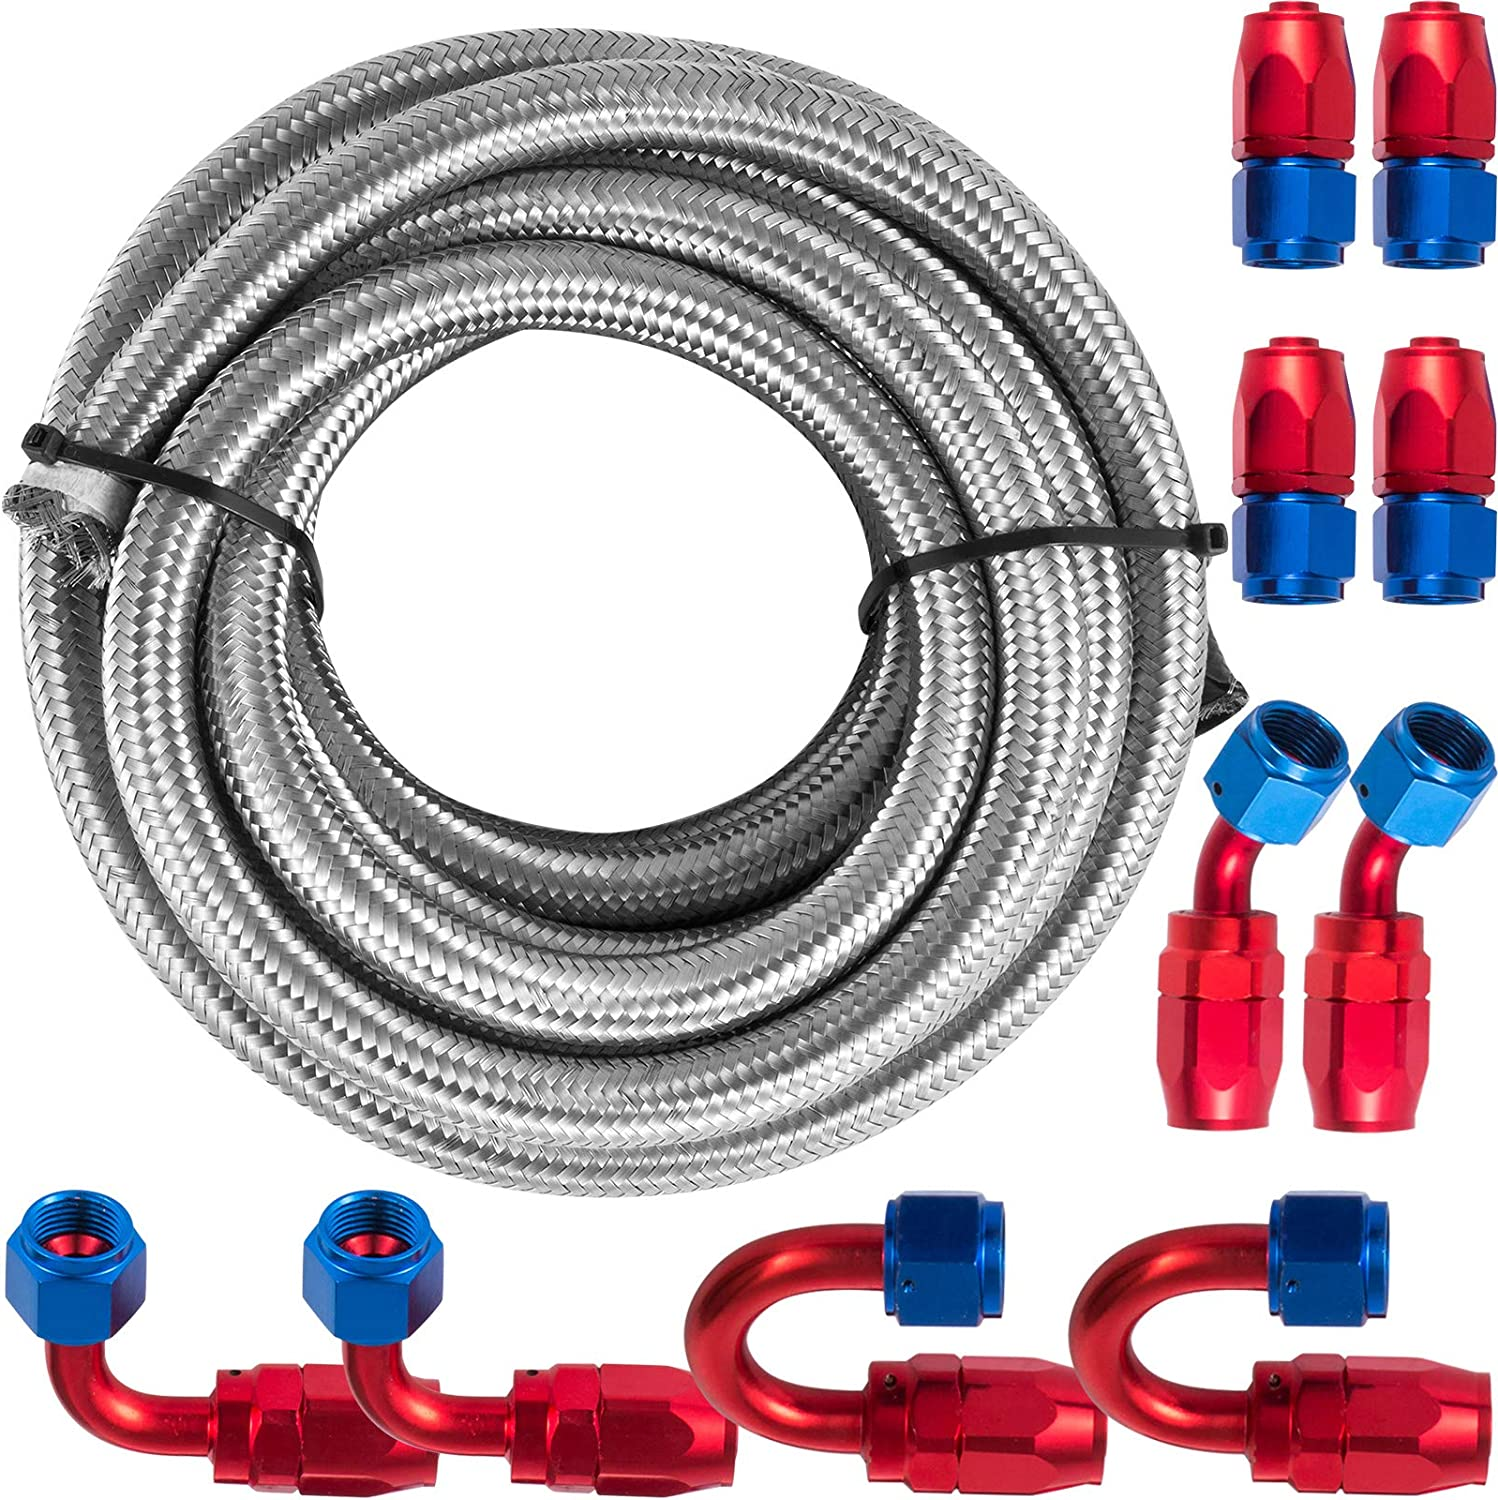 10ft 1//2 Fuel Line with 6Pcs 8AN Hose End Adapter and 2Pcs 8AN Hose Separator Clamps Nylon Braided Fuel Hose Kit Great for Coolant Hose and Oil Hose Repair Projects